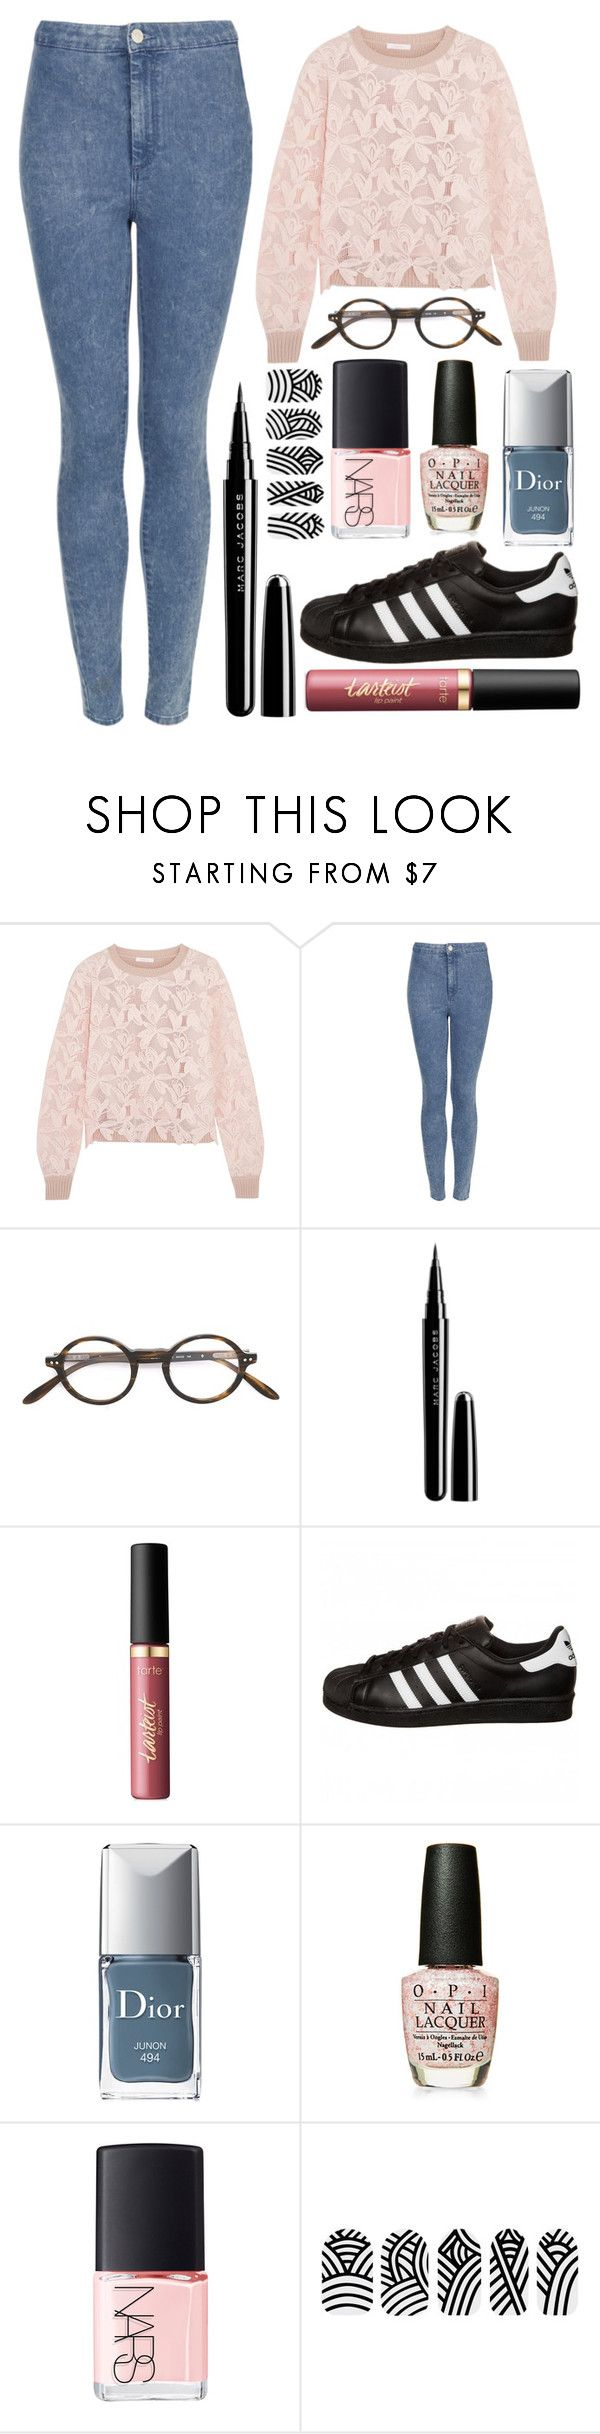 """""""Untitled #1275"""" by cashtonlv on Polyvore featuring See by Chloé, Topshop, Paul & Joe, Marc, tarte, adidas Originals, Christian Dior, OPI and NARS Cosmetics"""